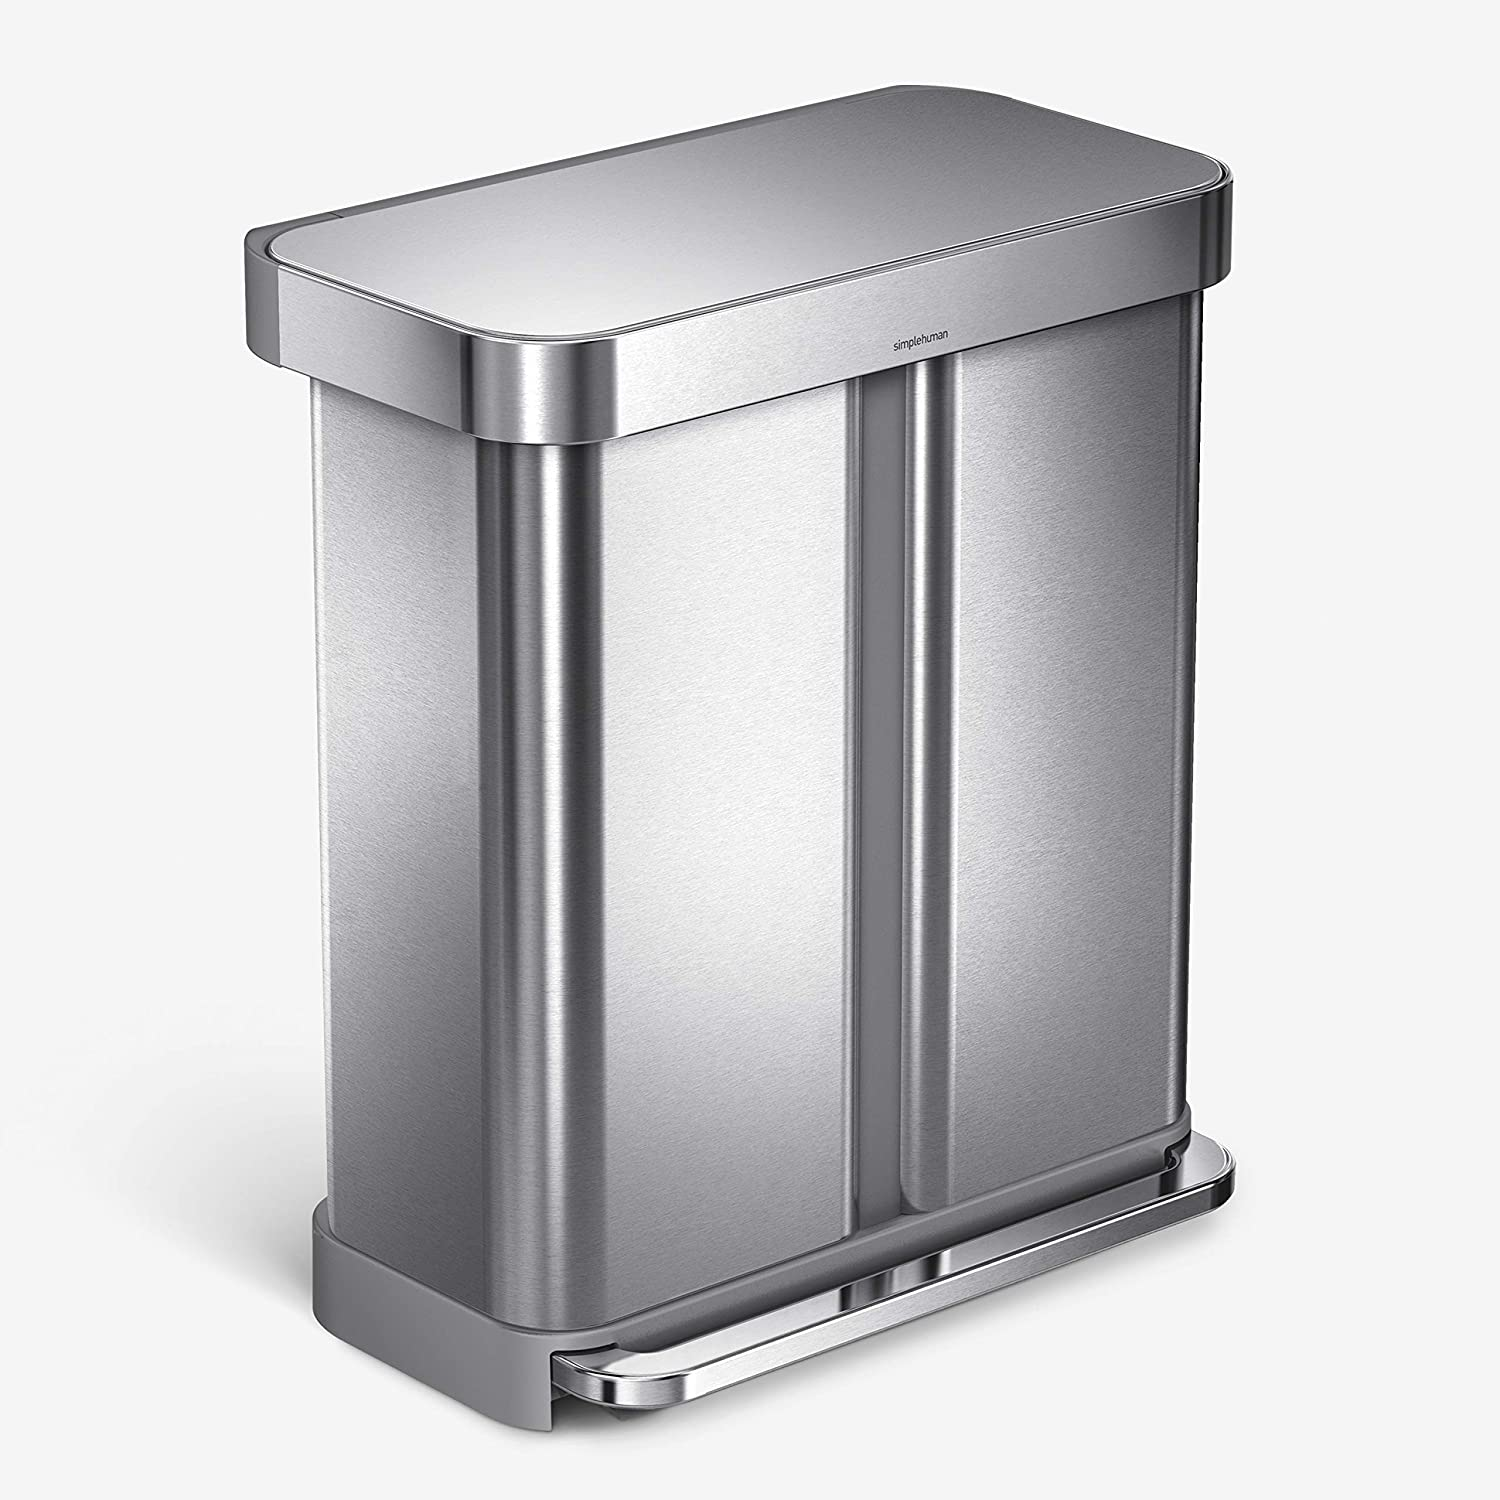 Double Trash Can Bin 15L 2-Compartment Waste Storage Twin Lid